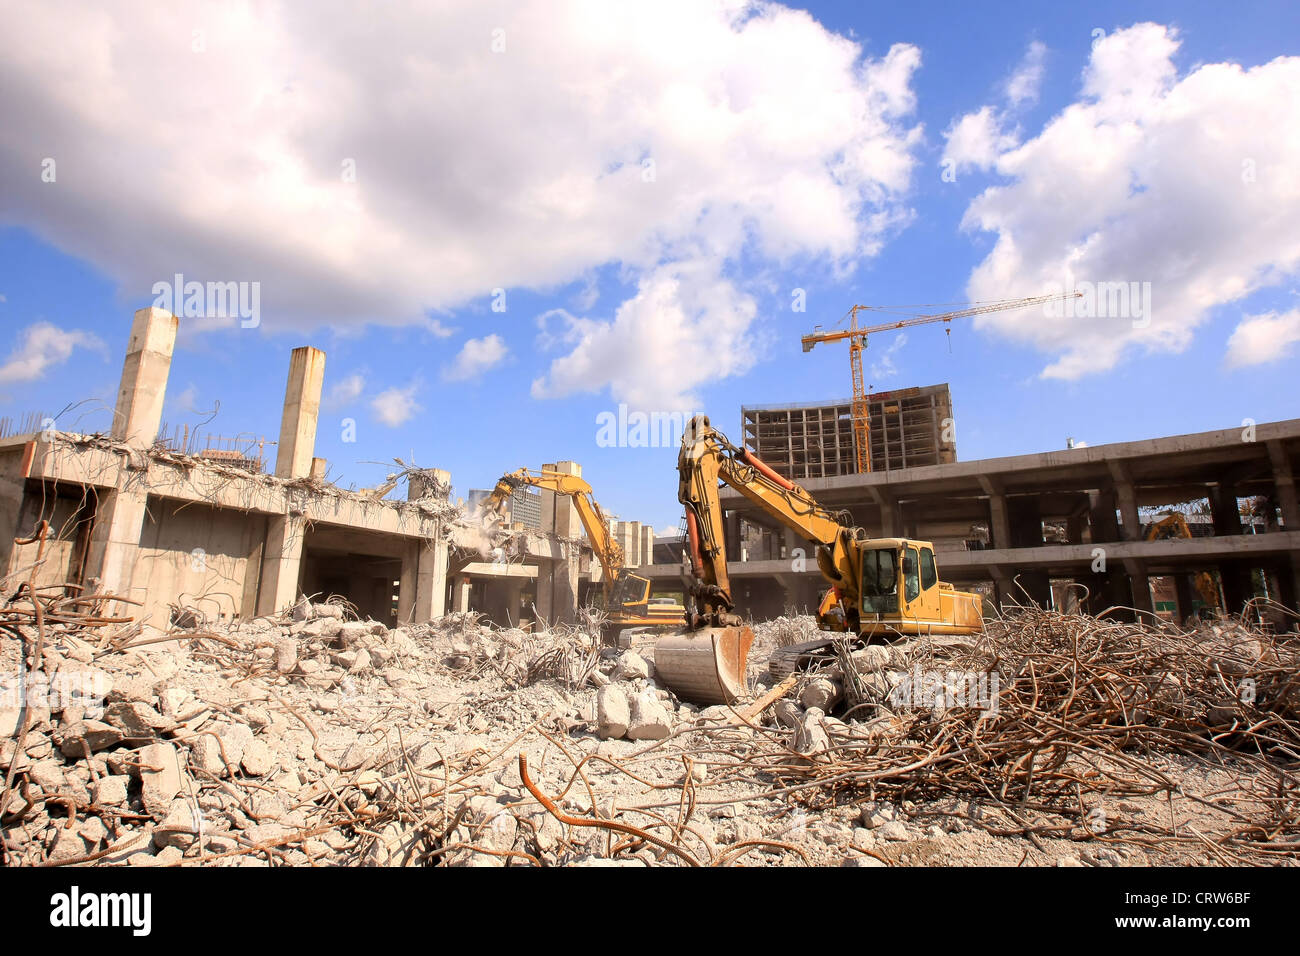 Urban renewal in the city centre - Stock Image